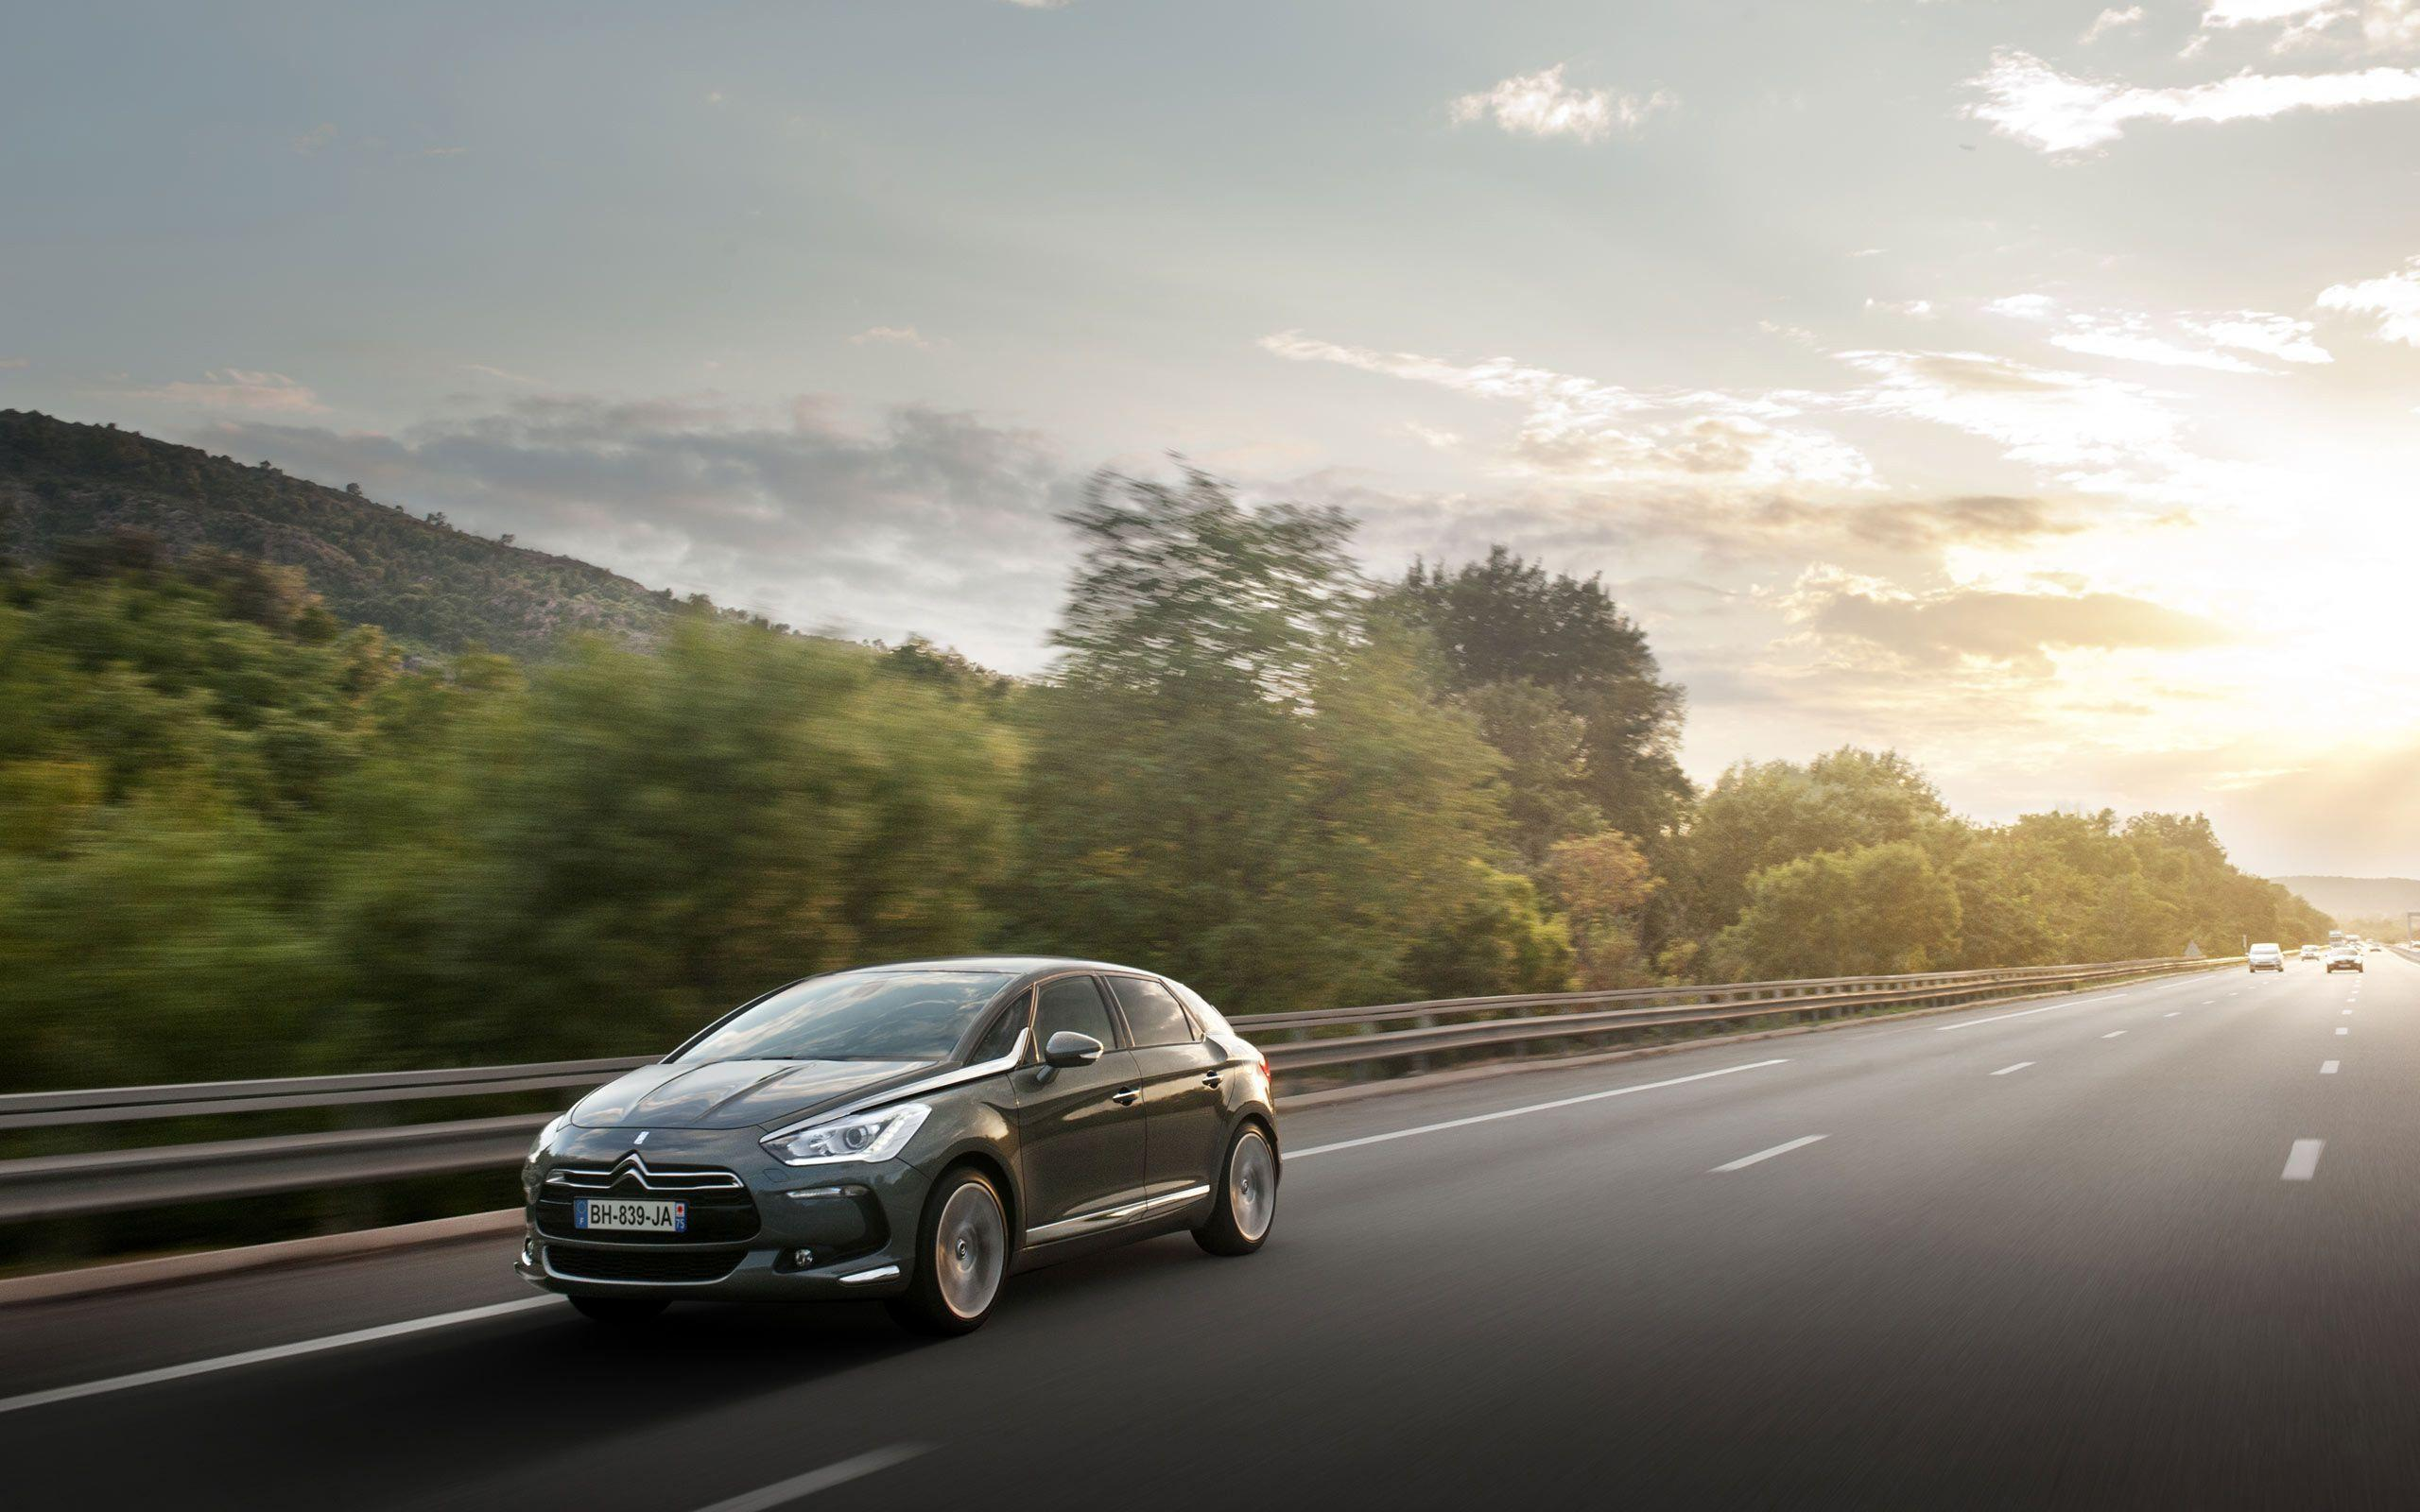 Citroen-DS5 wallpapers and images - wallpapers, pictures, photos